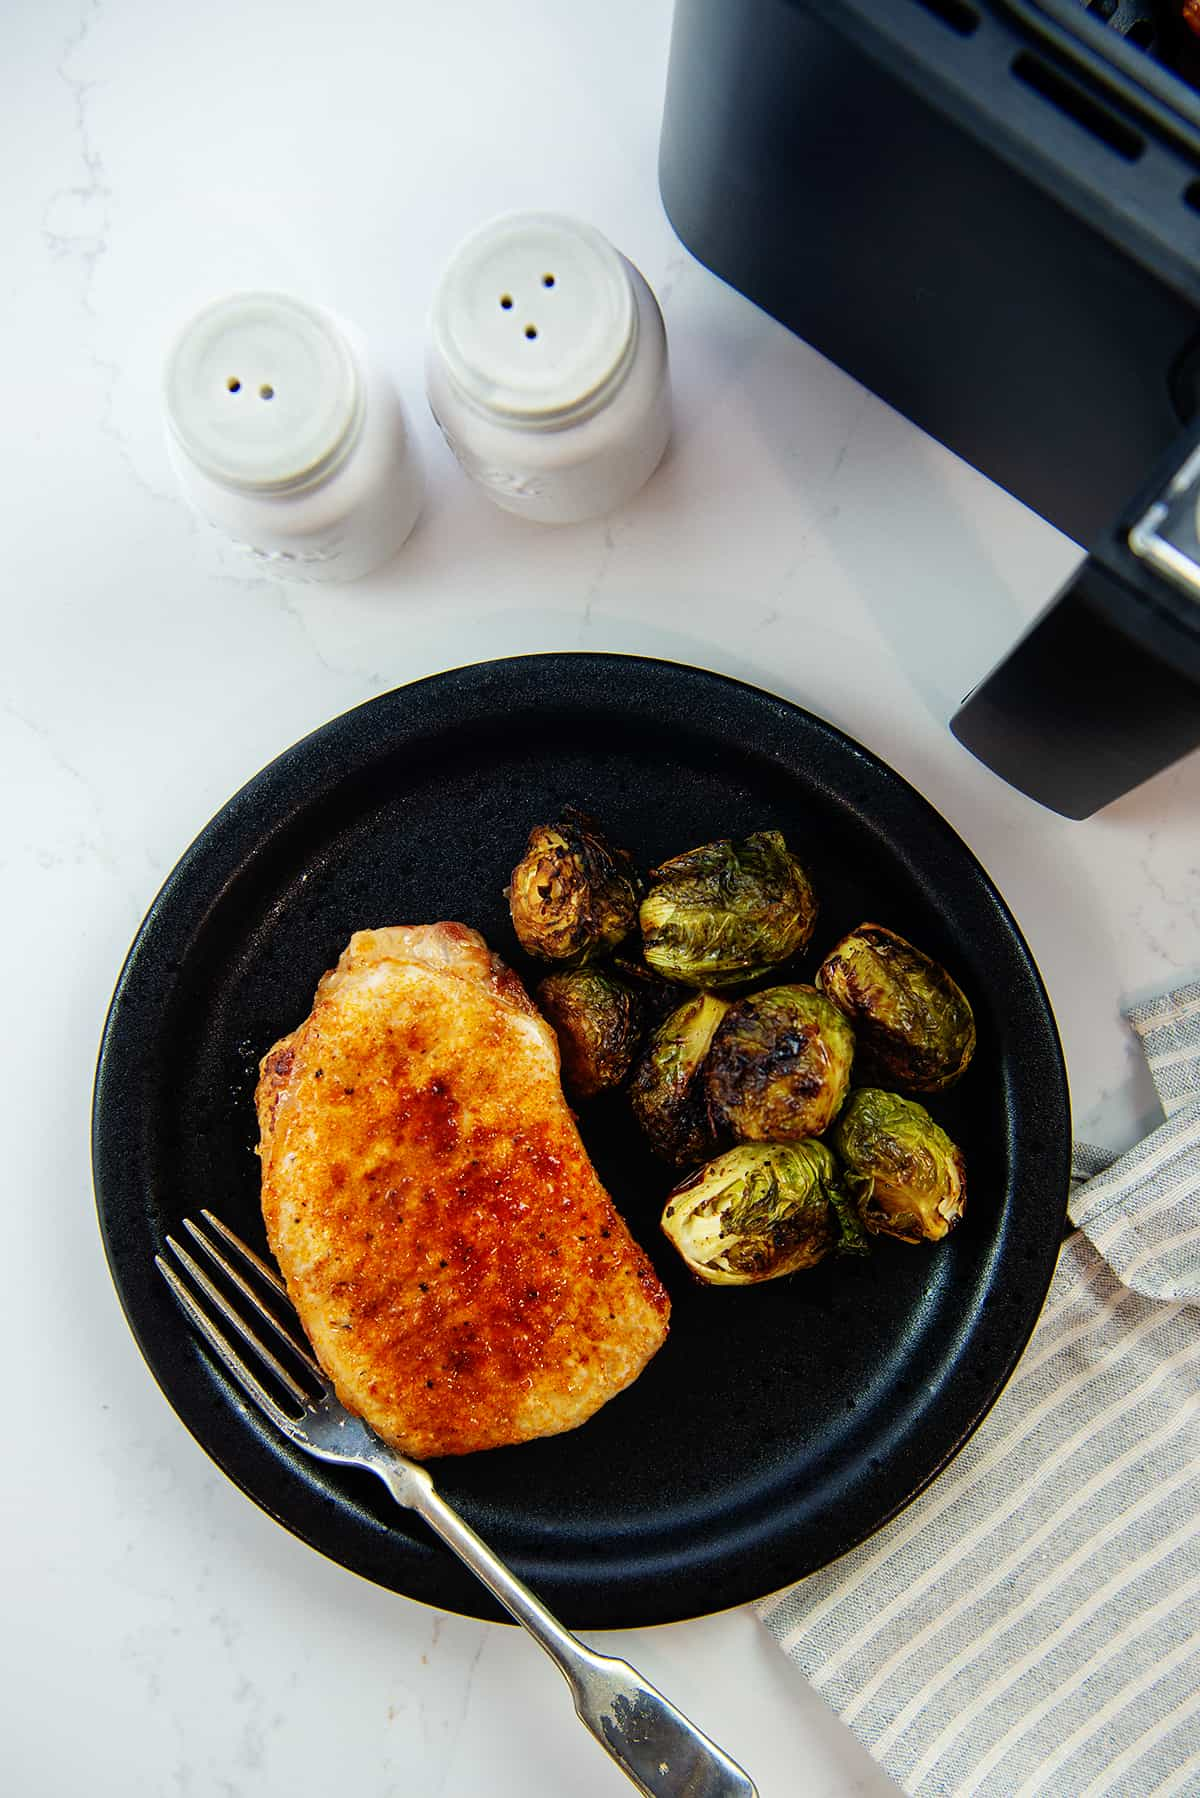 pork chop on plate with Brussels sprouts.